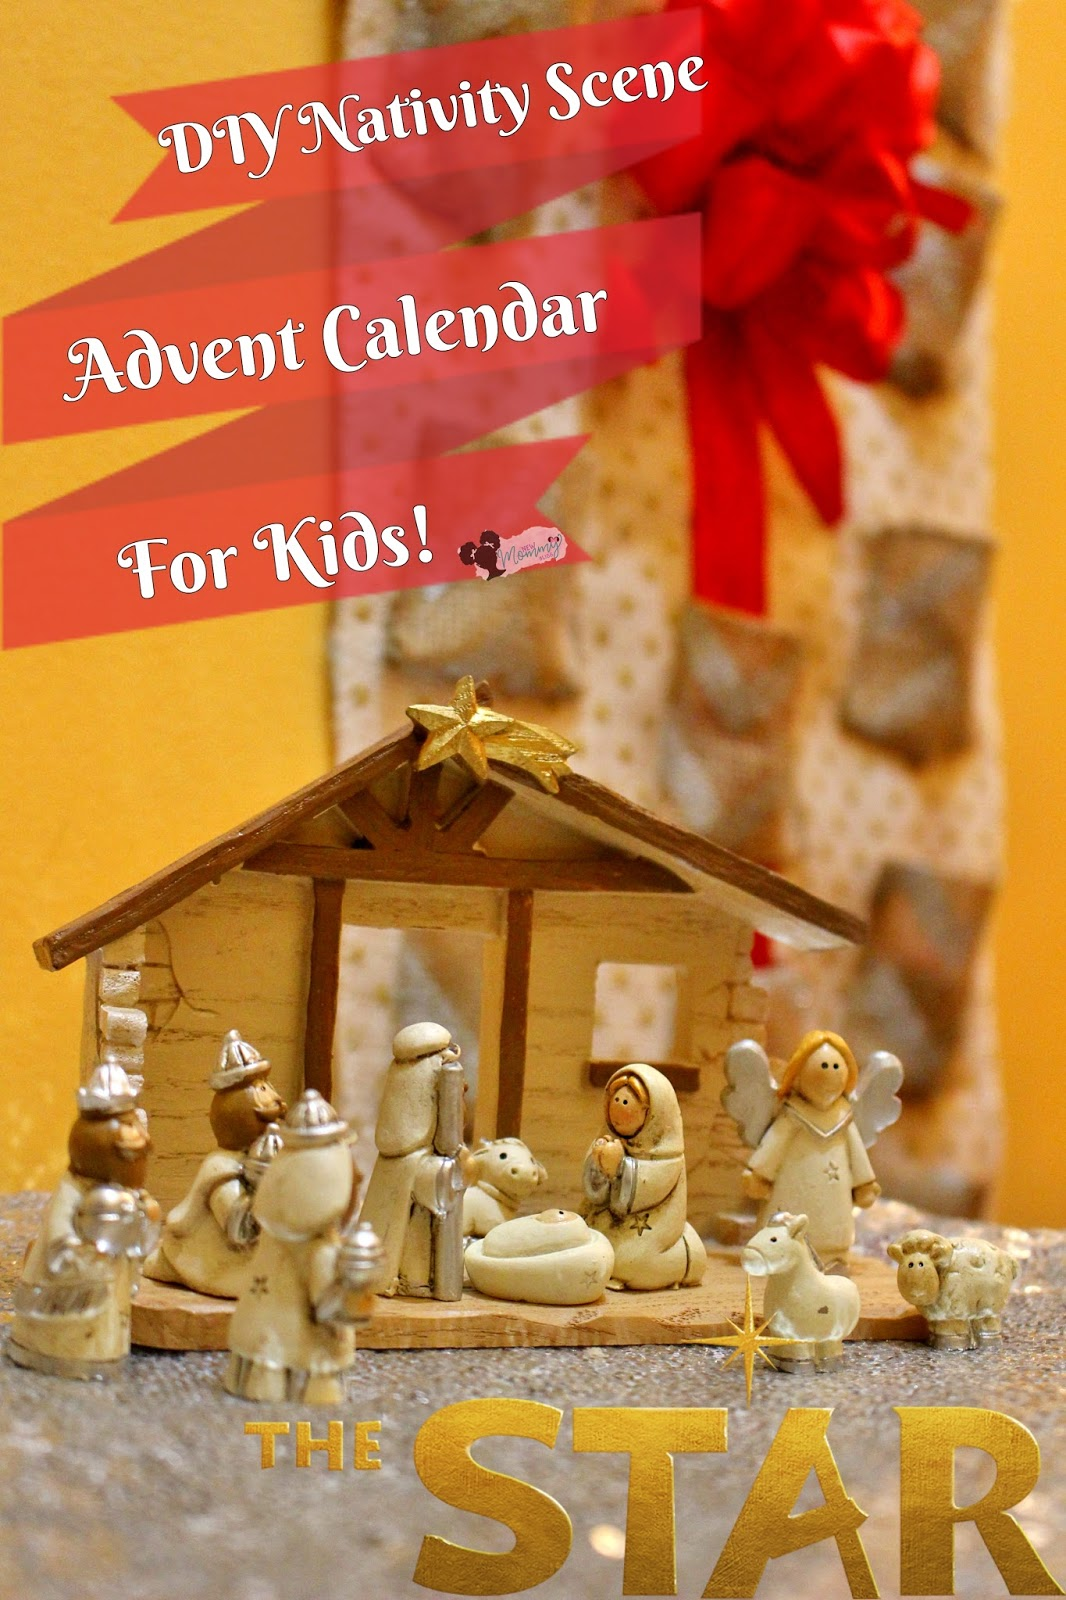 Diy Childrens Advent Calendar : Diy nativity advent calendar for kids thestar new mommy